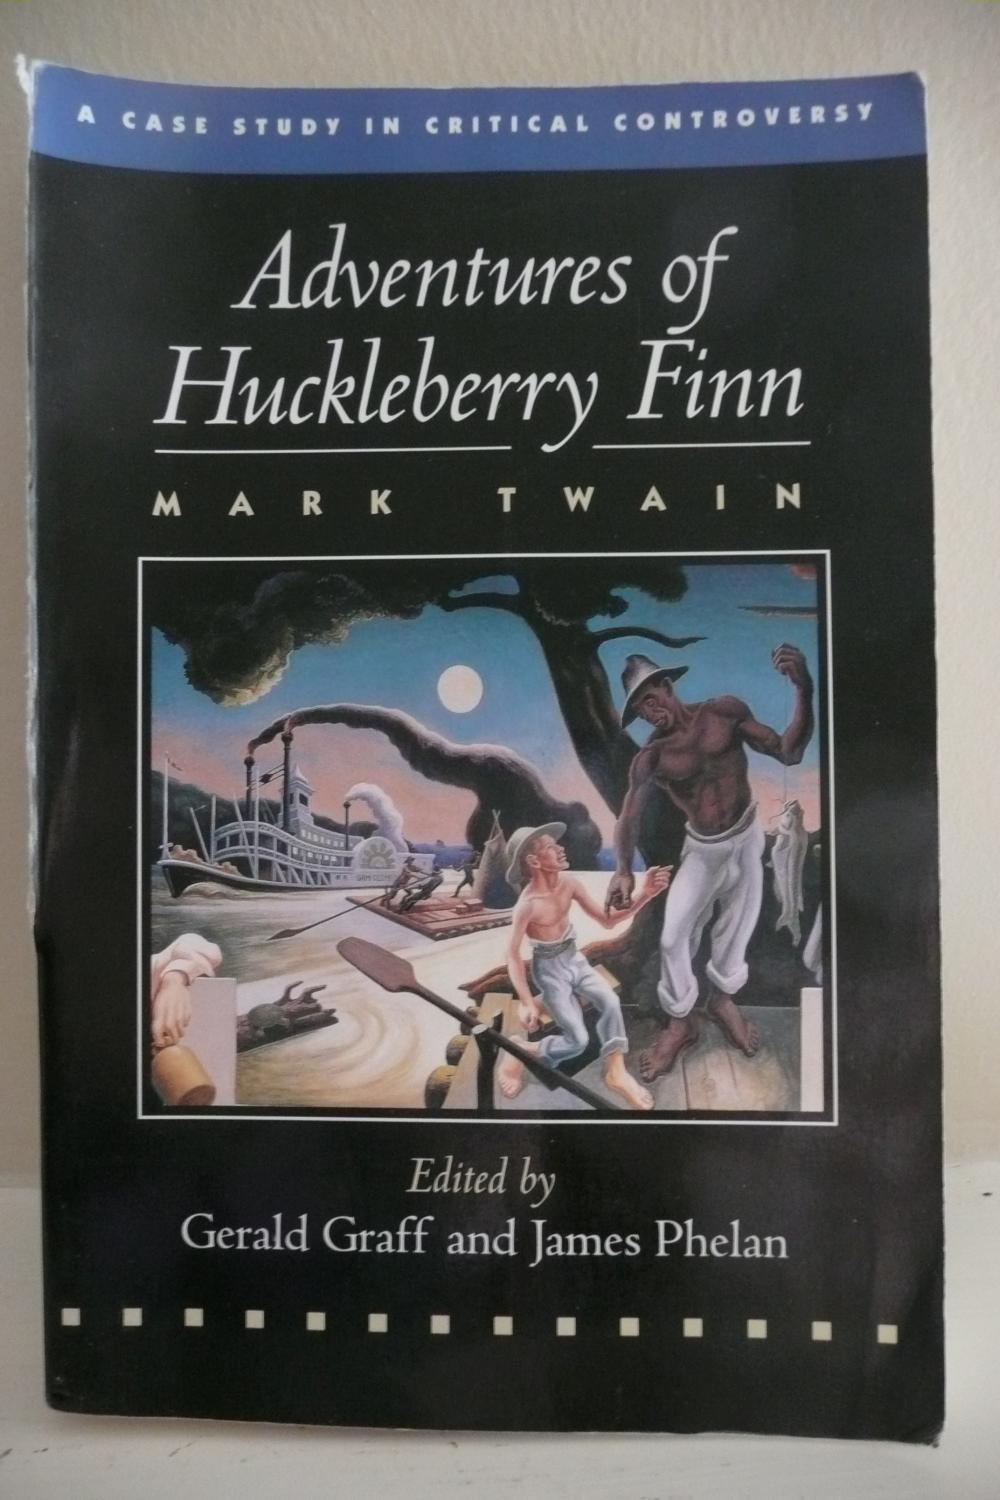 adventures of huckleberry finn by twain